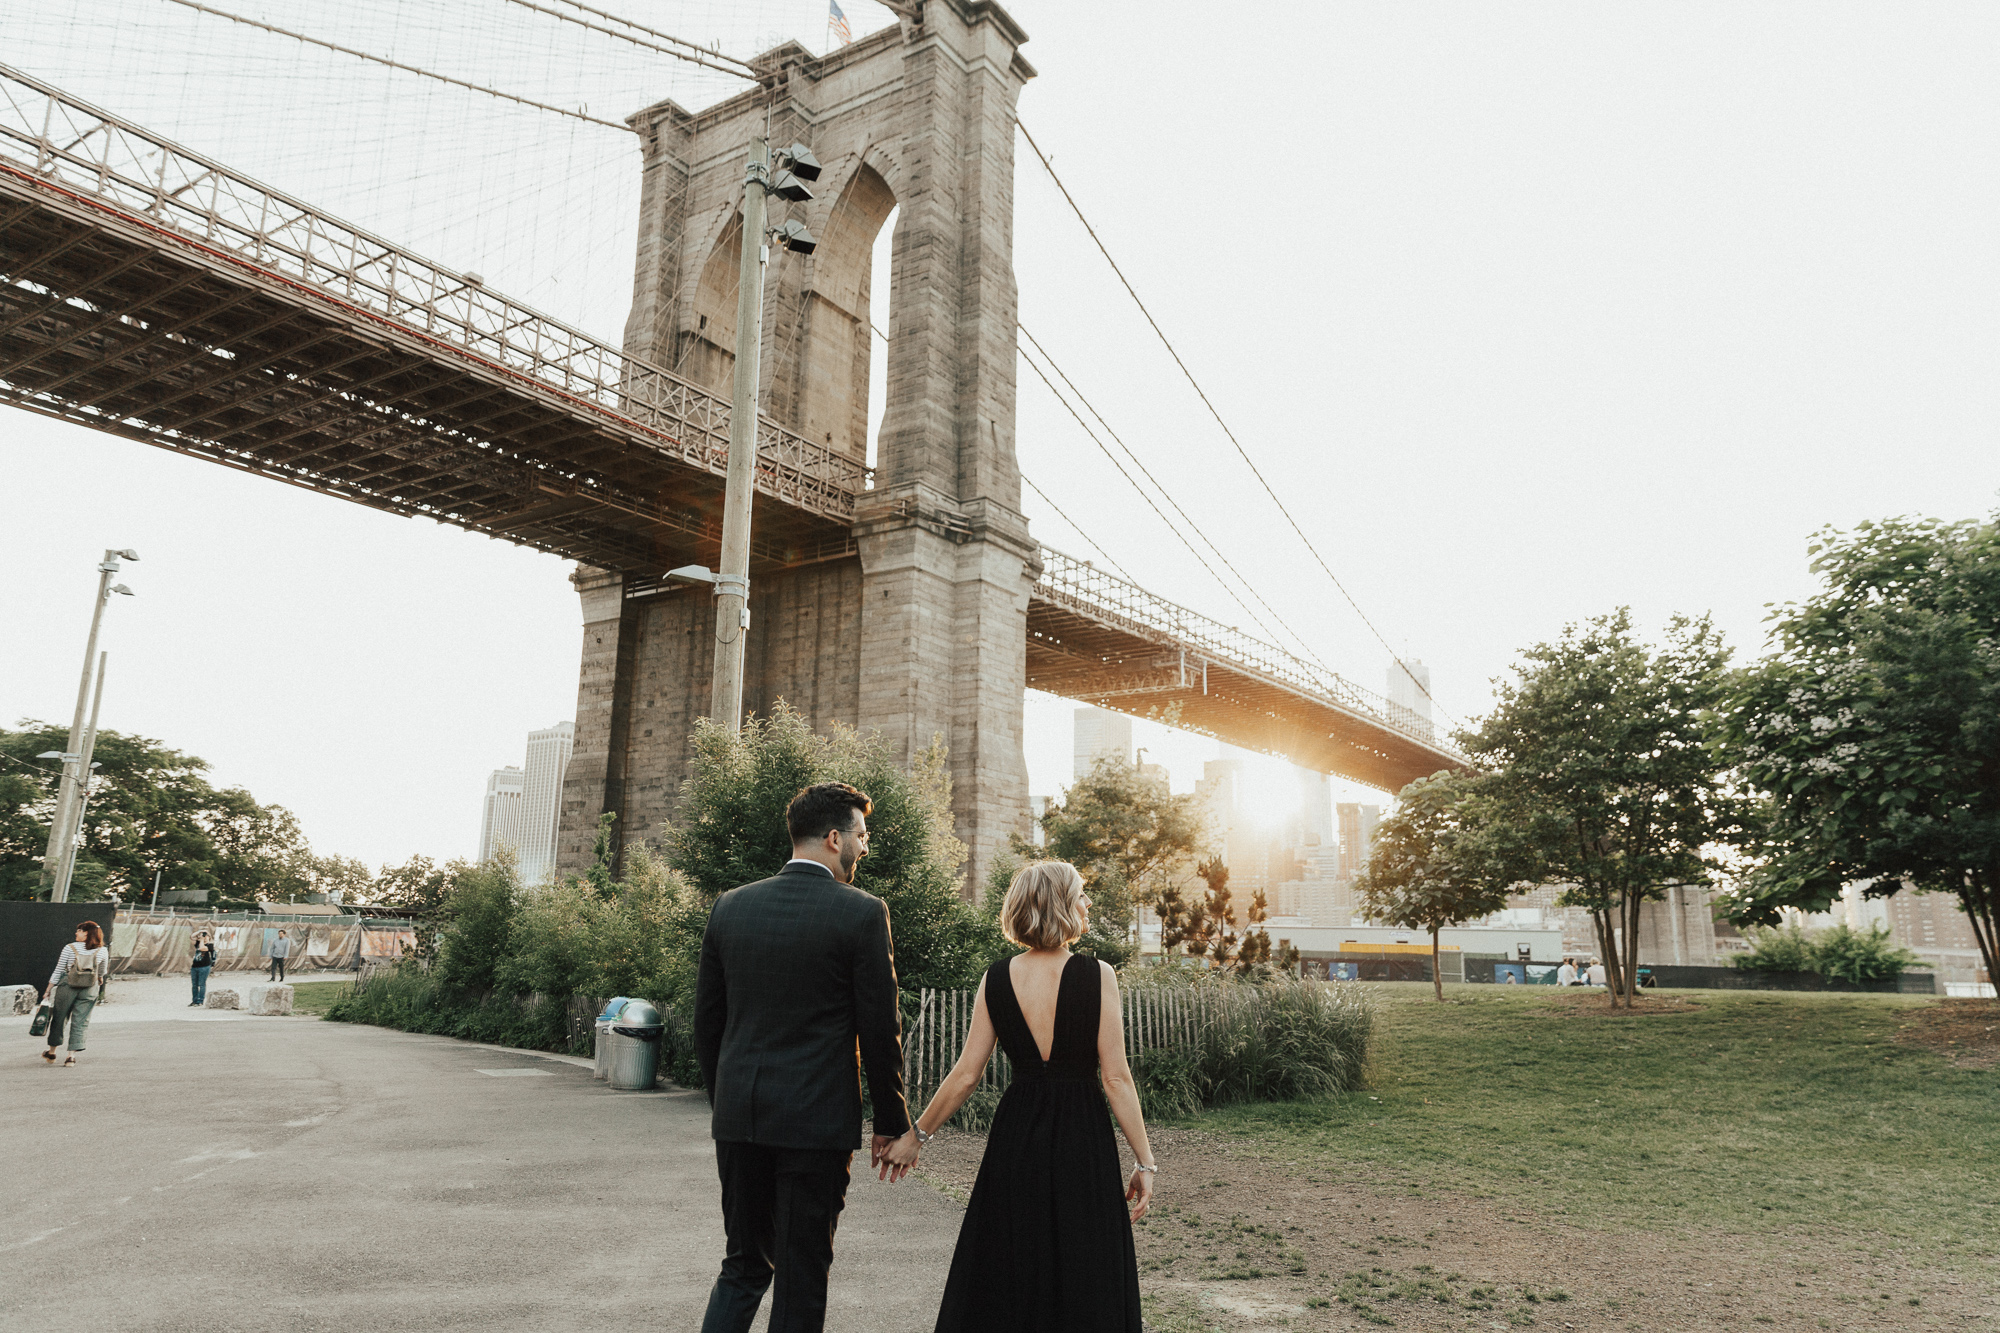 brooklyn_nyc_engagement_photography-56-of-83.jpg